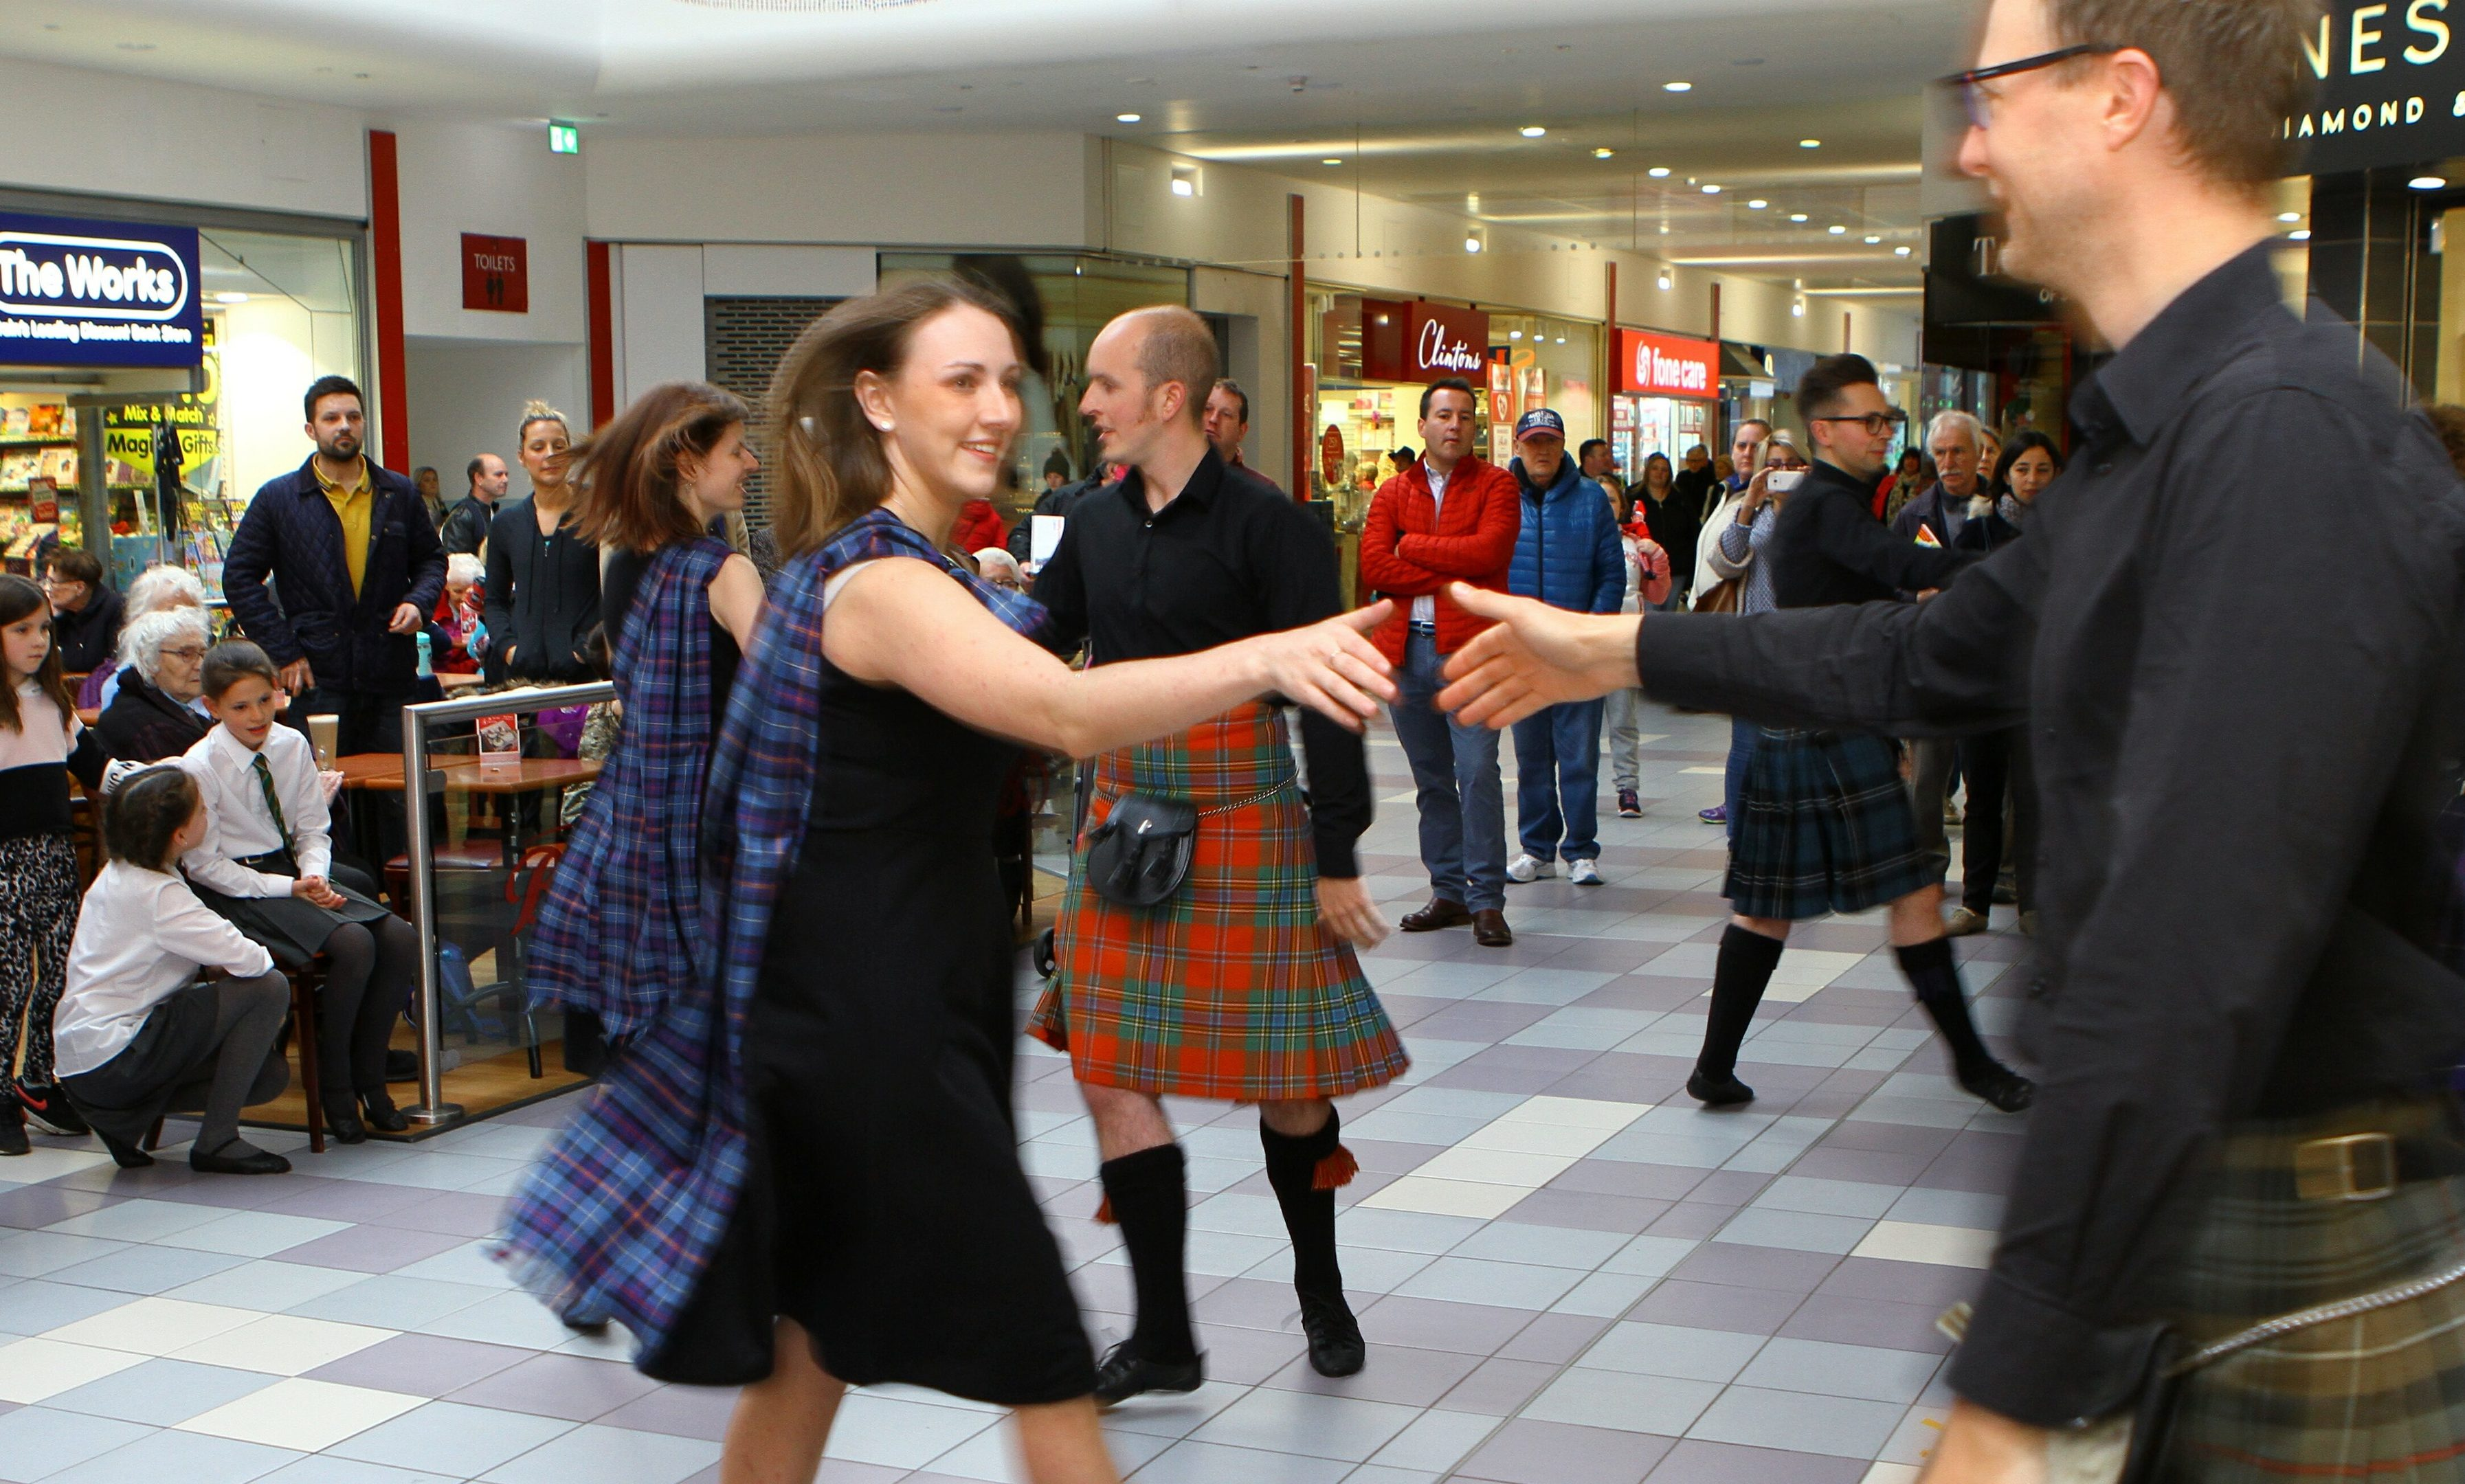 RSCDS members dancing in the busy St. John's Shopping Centre, Perth